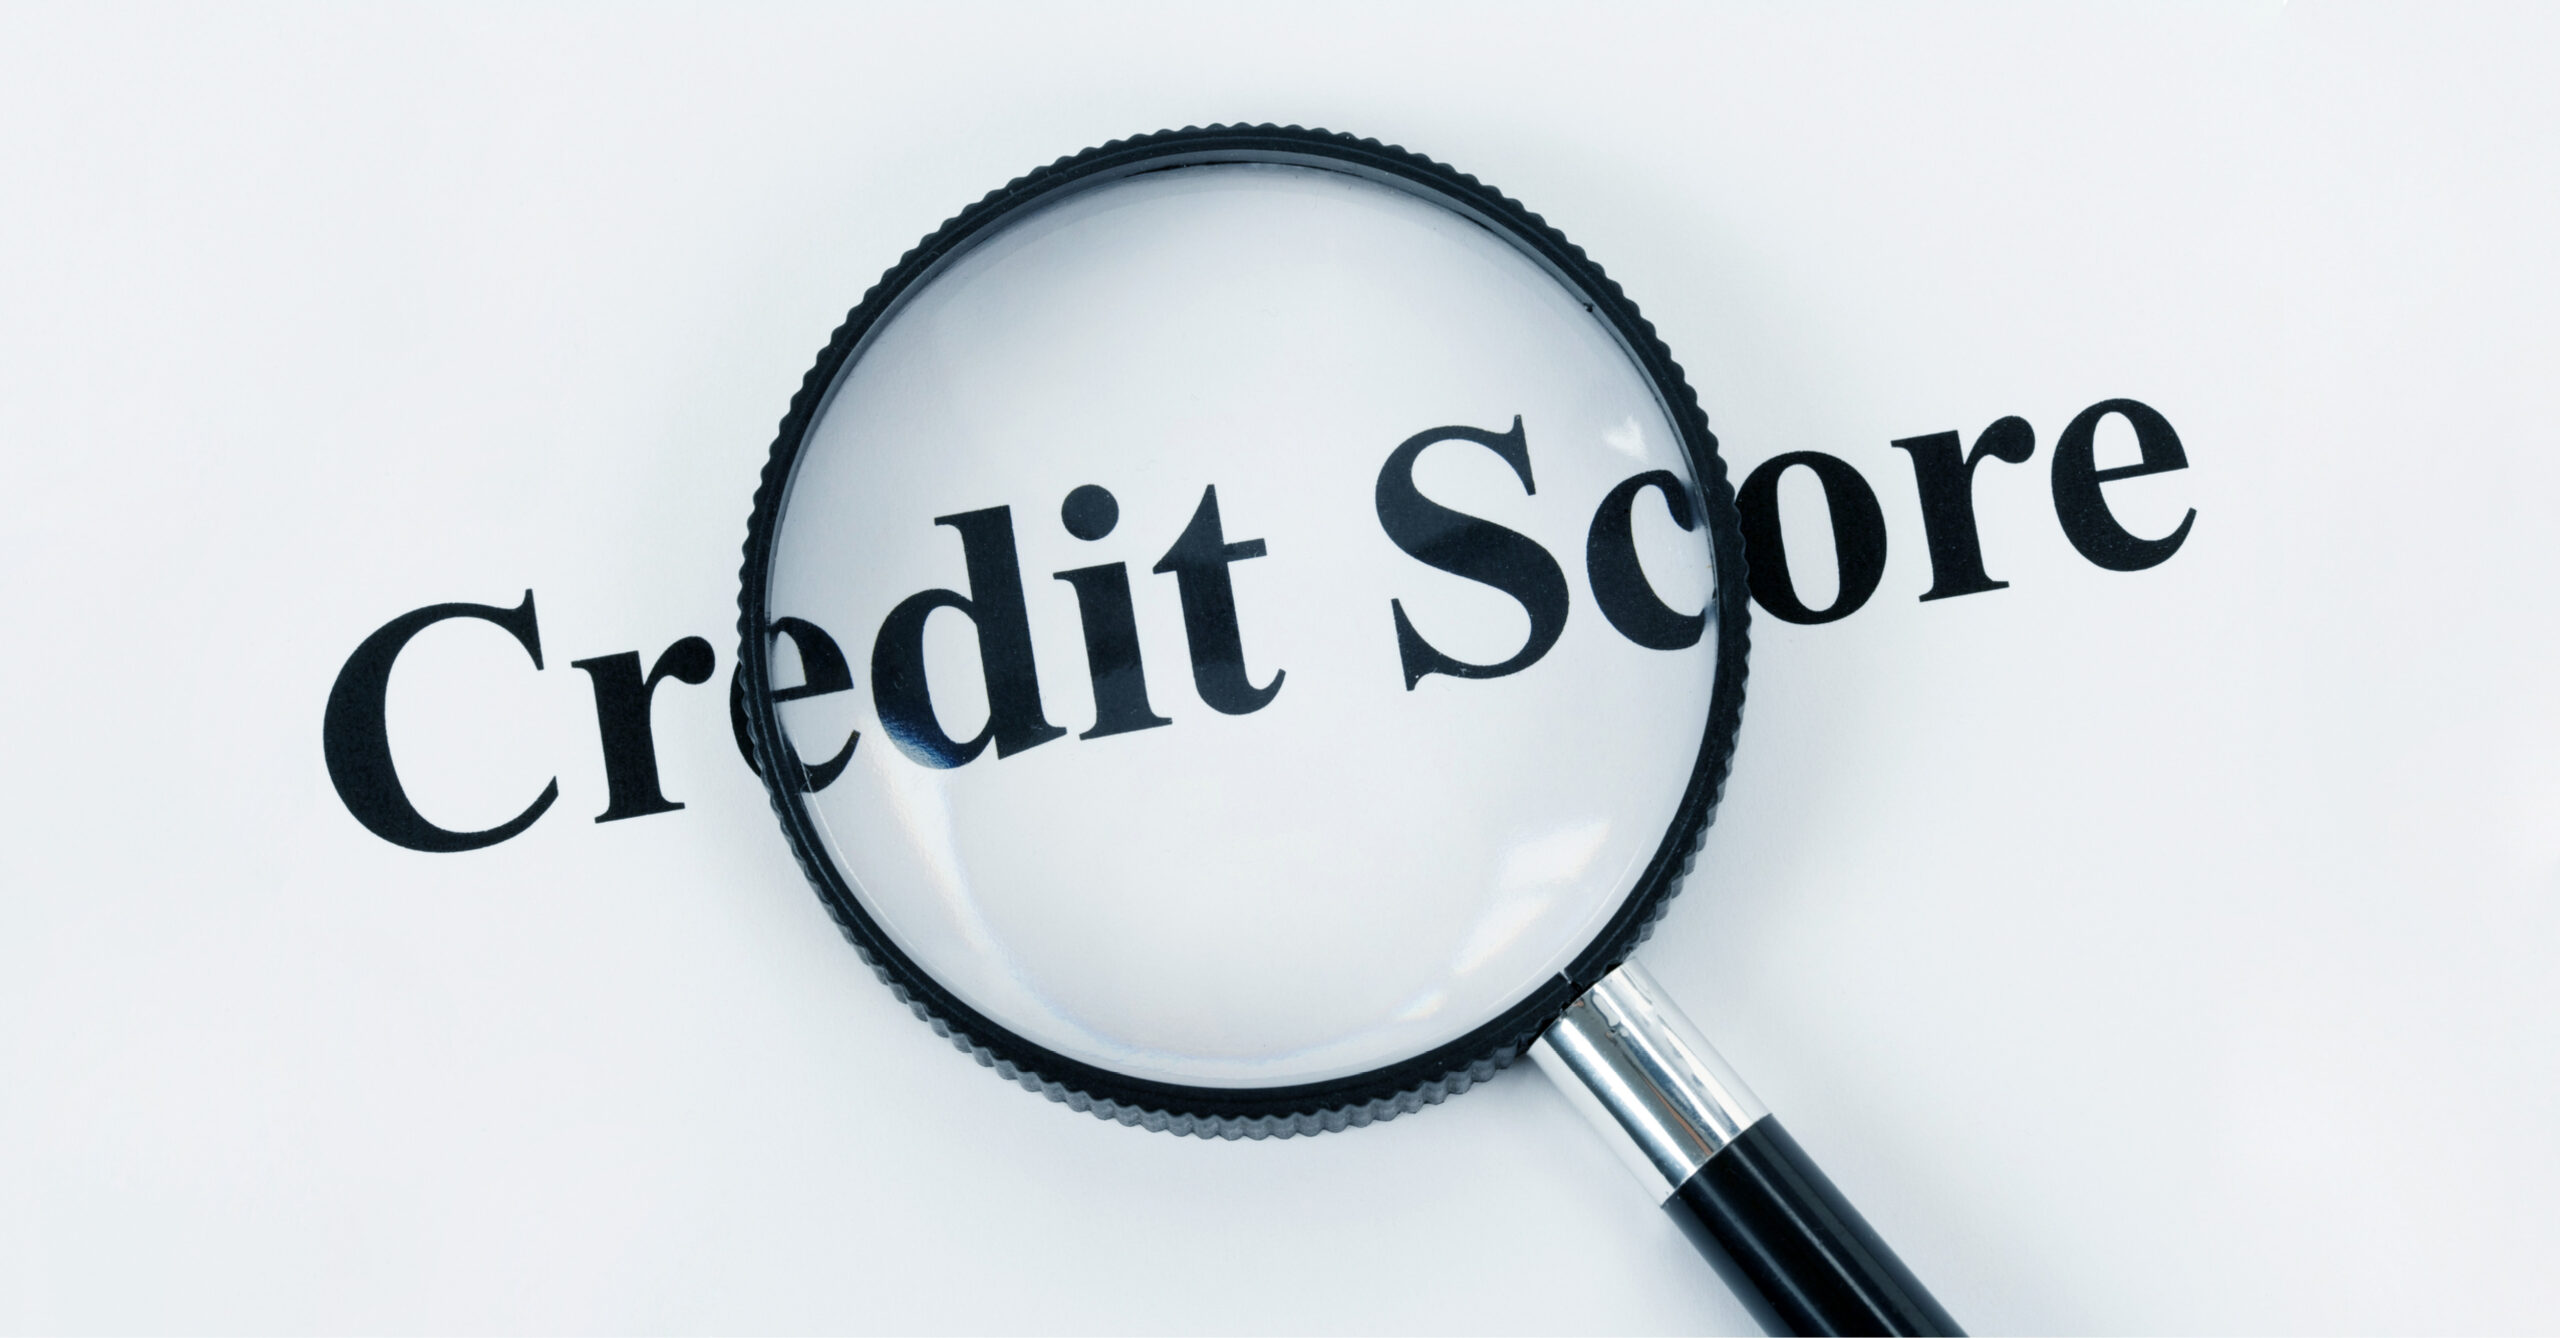 What Is Your Credit Score And Why Does It Matter?